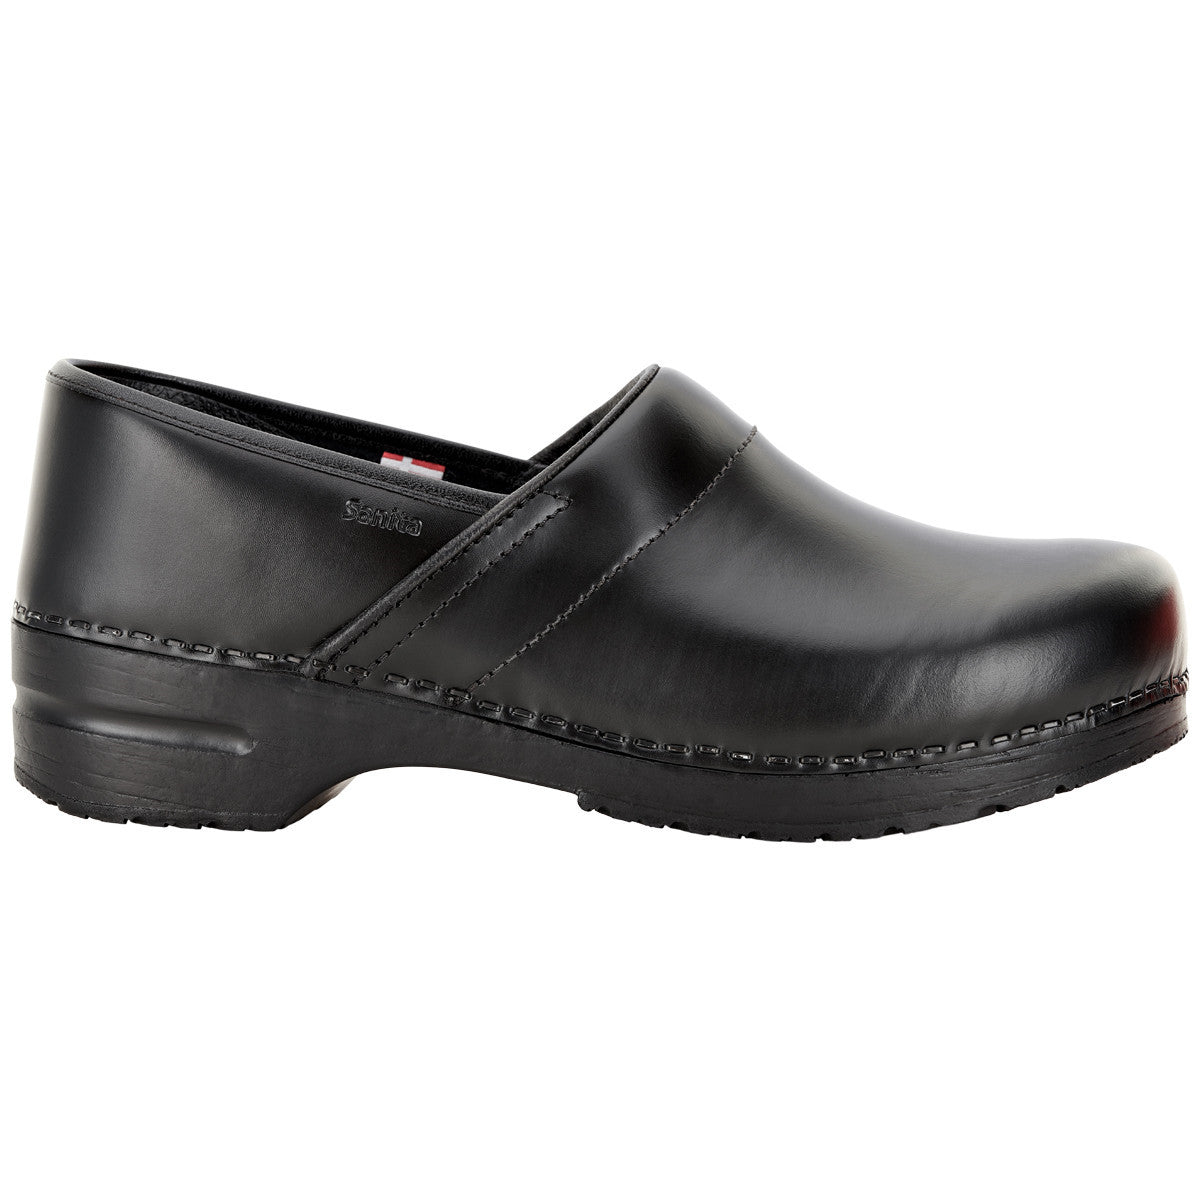 Sanita Pro Cabrio Clog in Black or Brown - 457806W